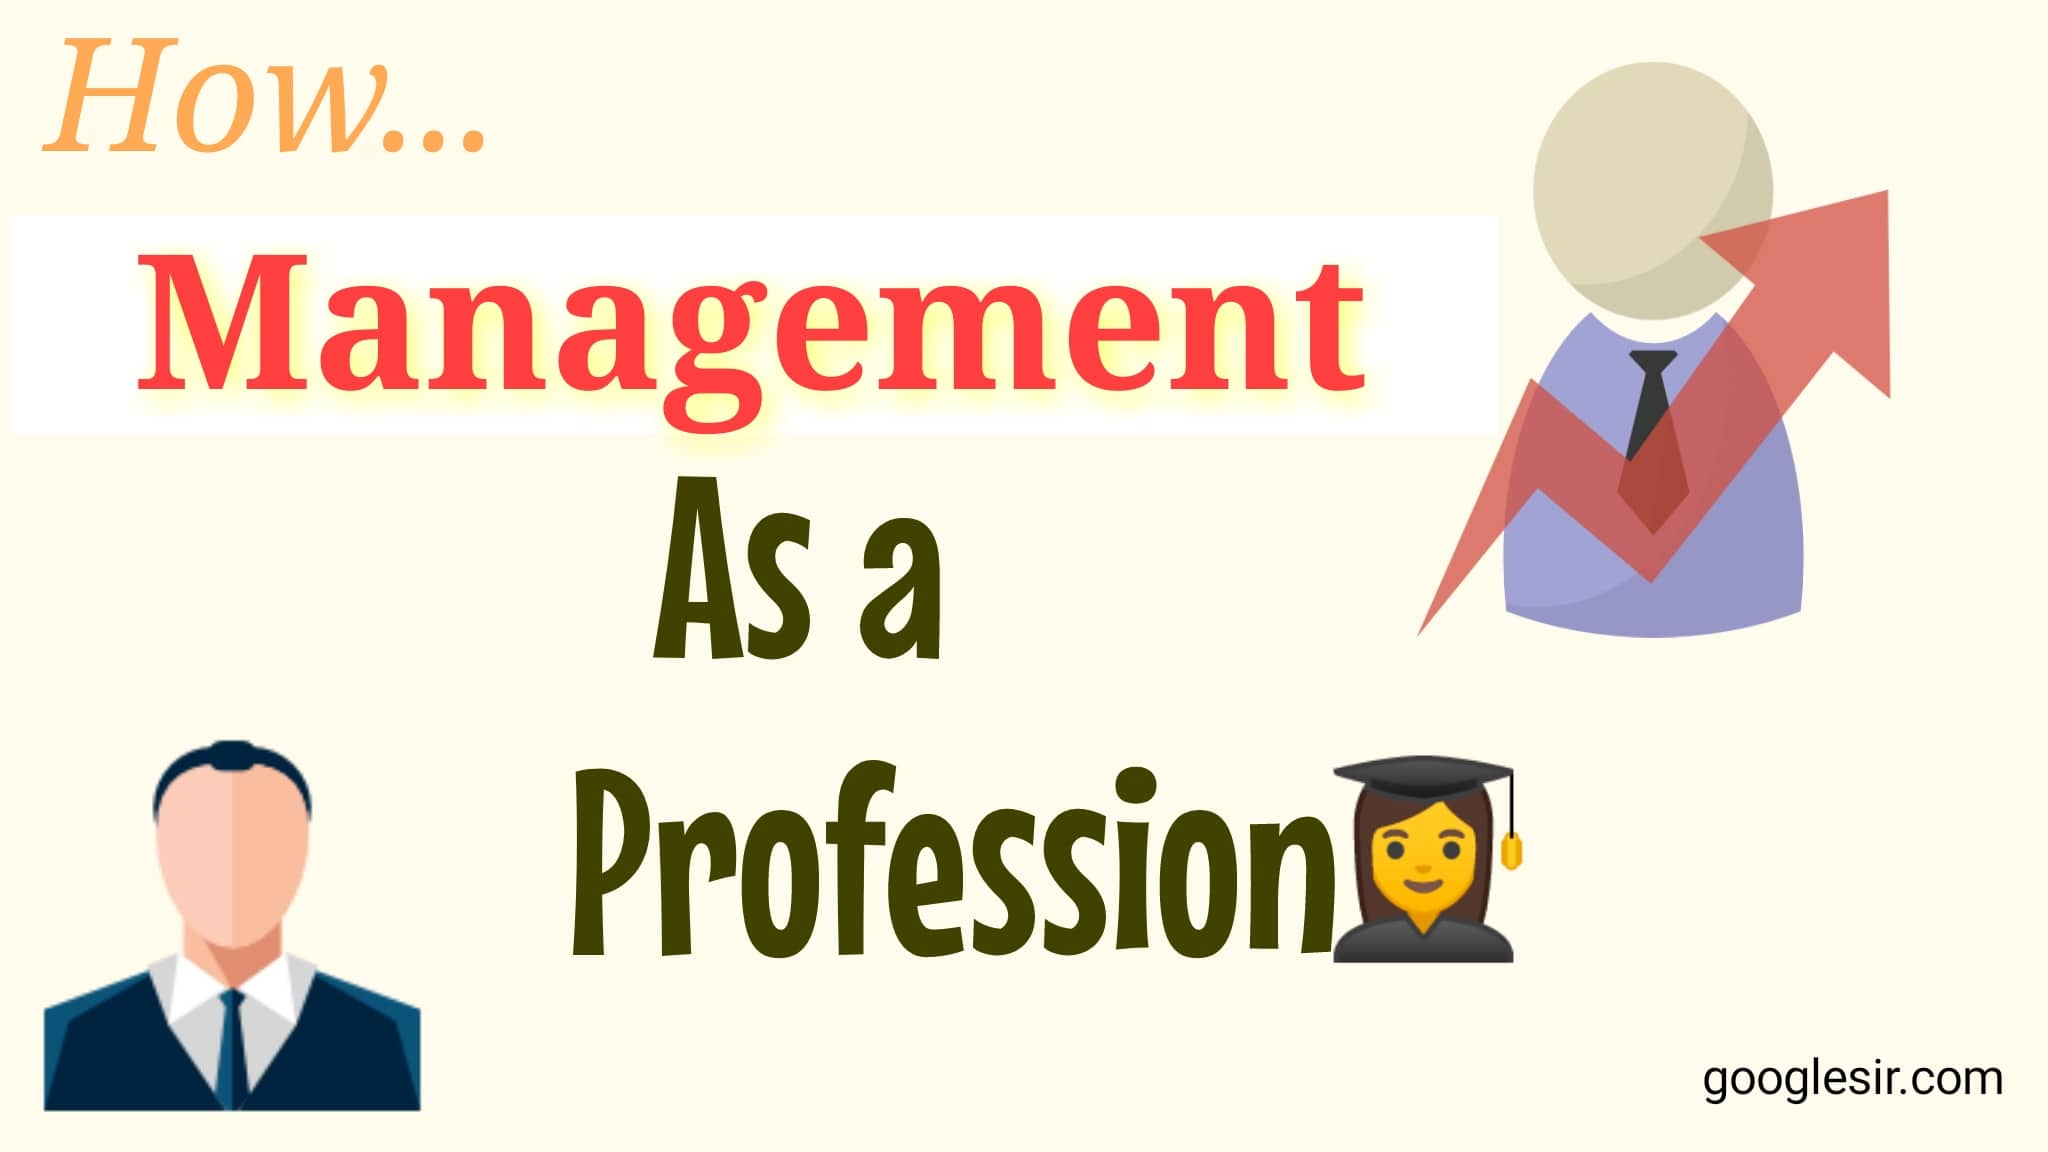 Why is Management a Profession?